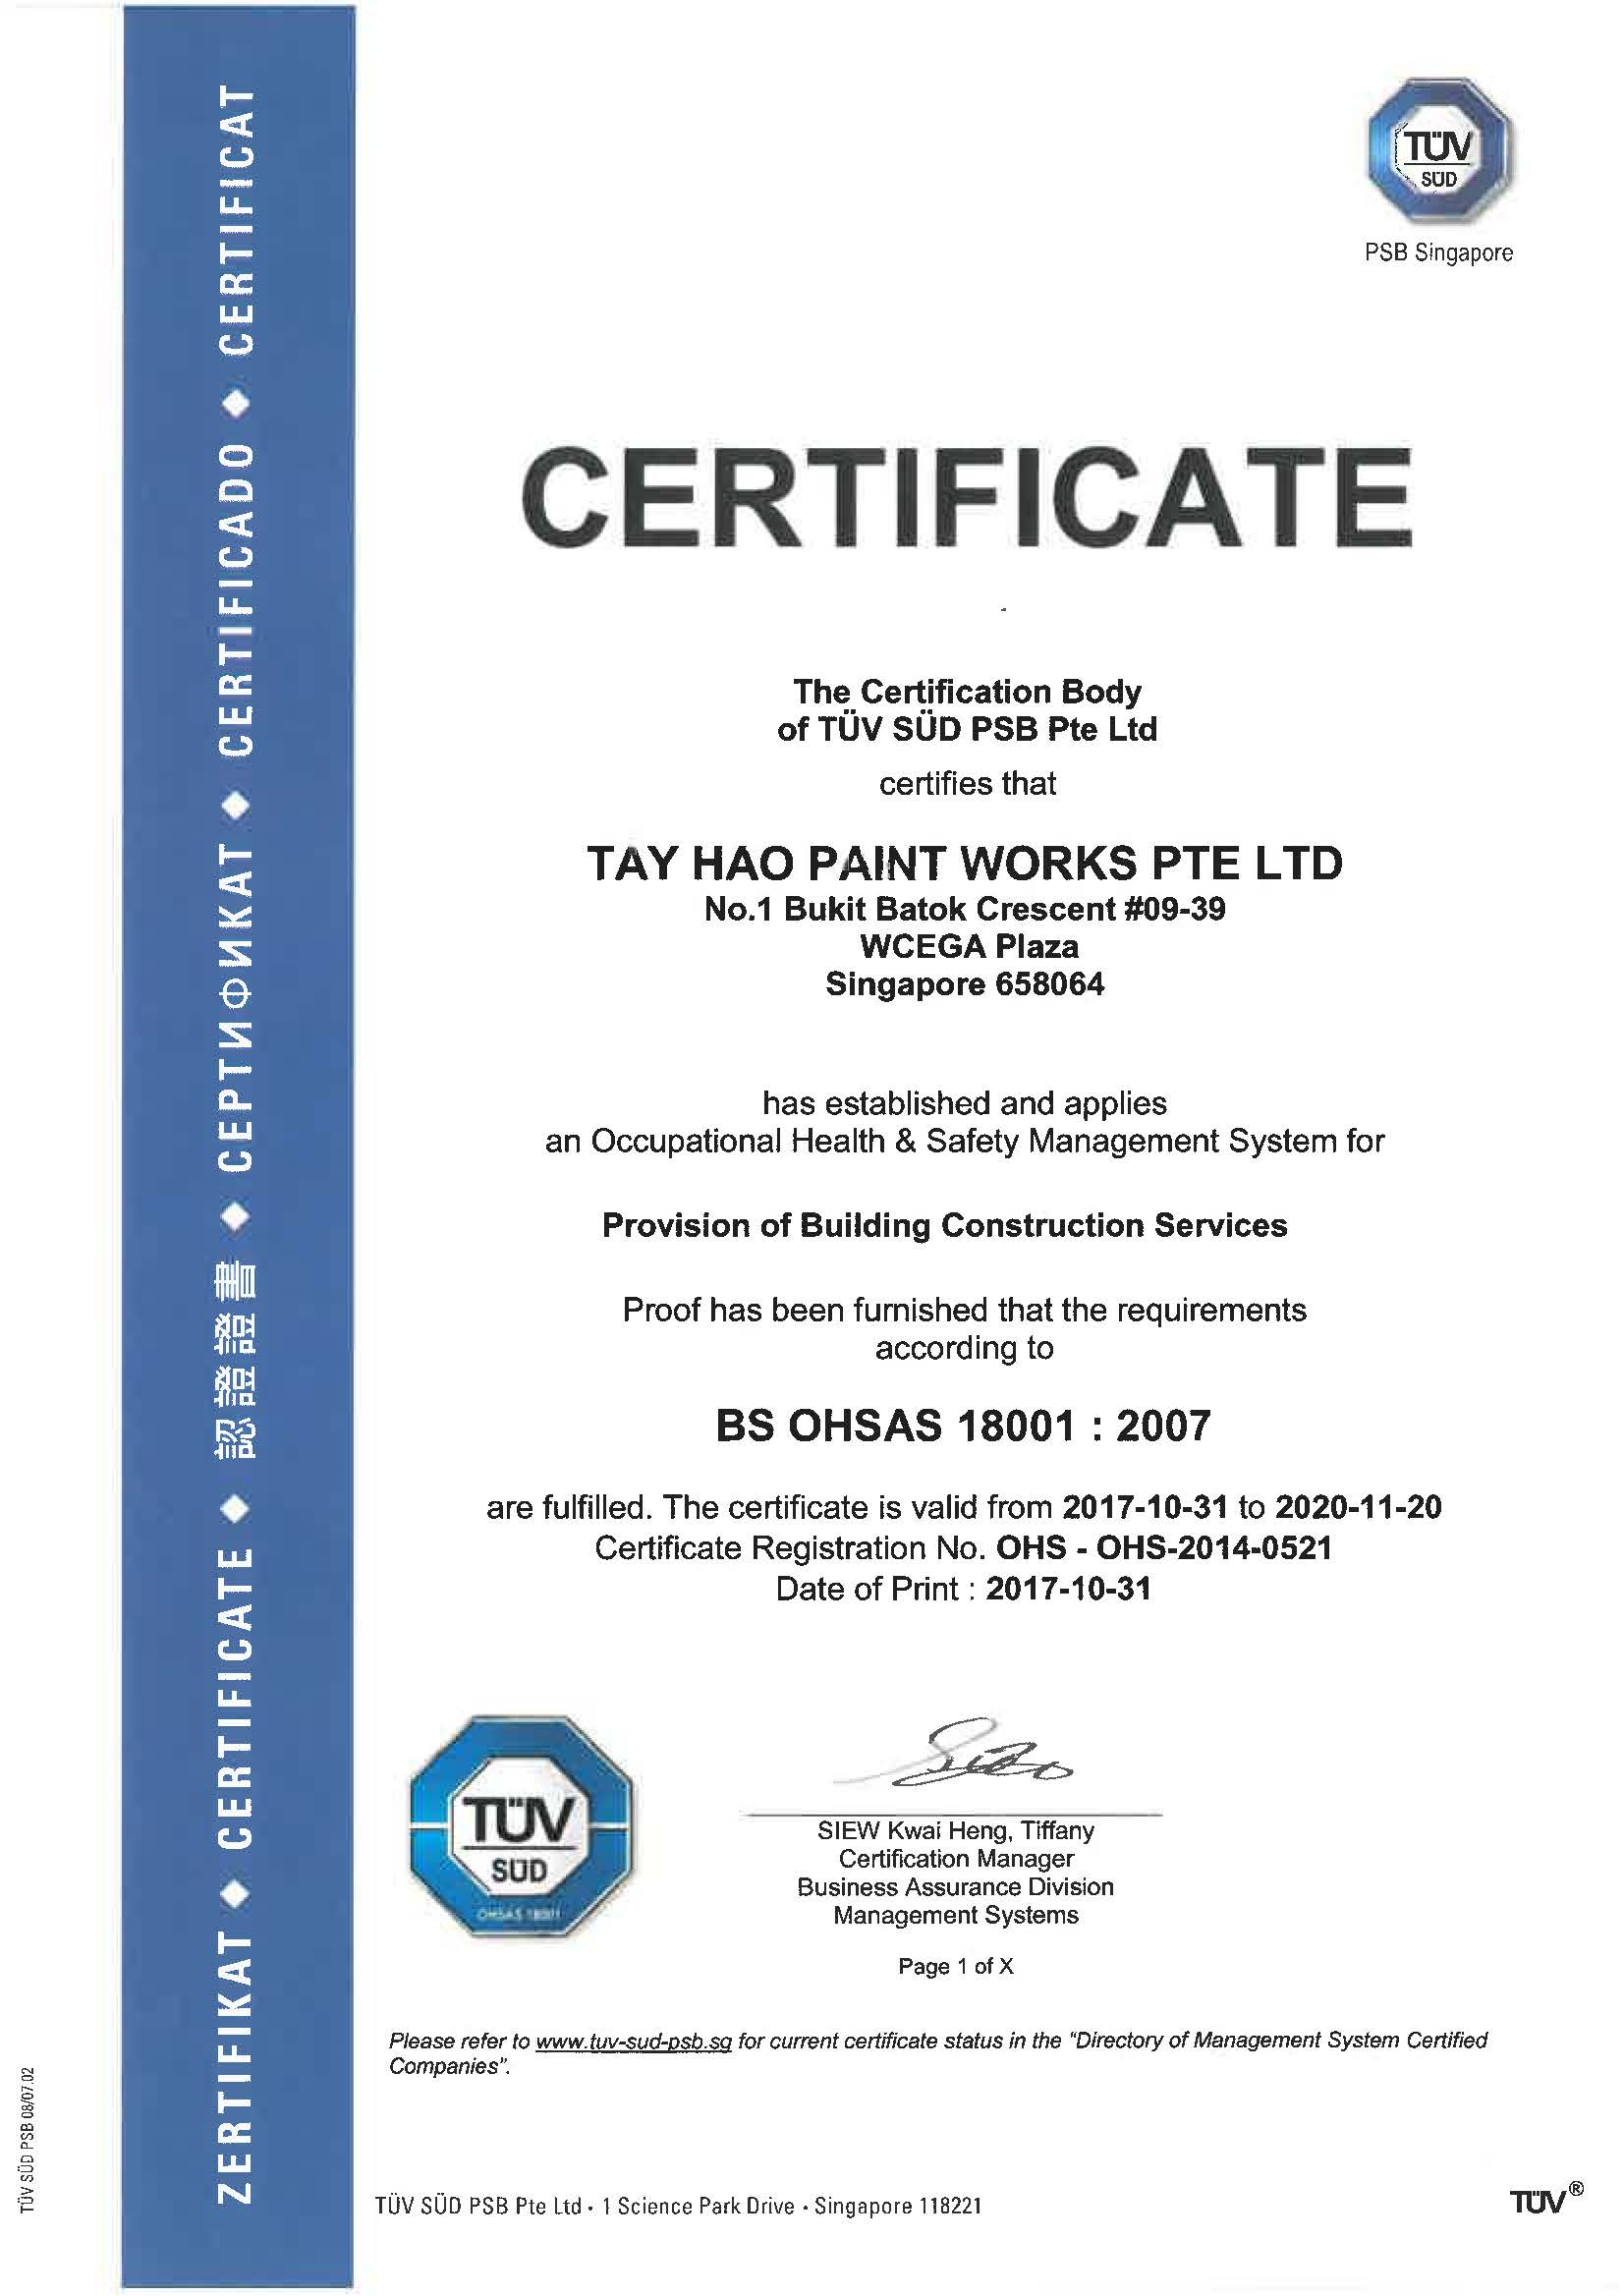 Awards and Credentials - Tay Hao Paint Works